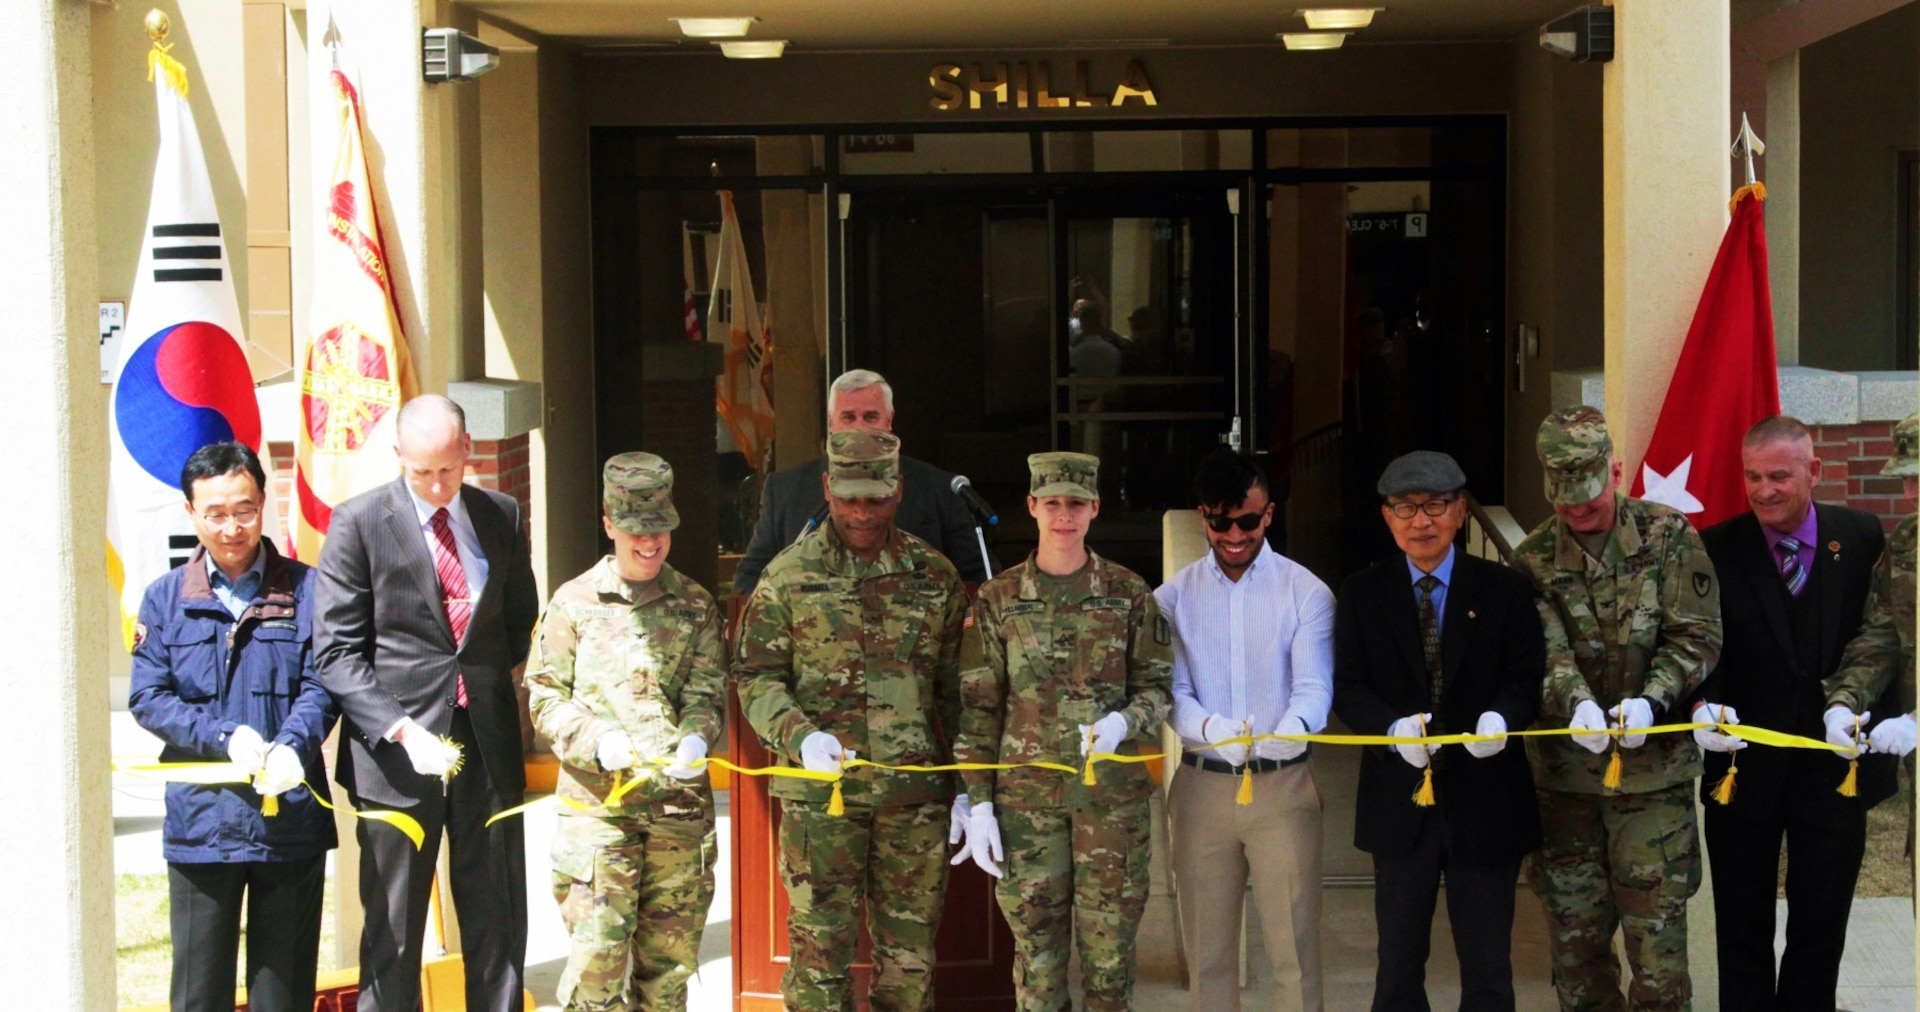 U.S. Army Garrison Daegu's Shilla Tower Opens to Residents